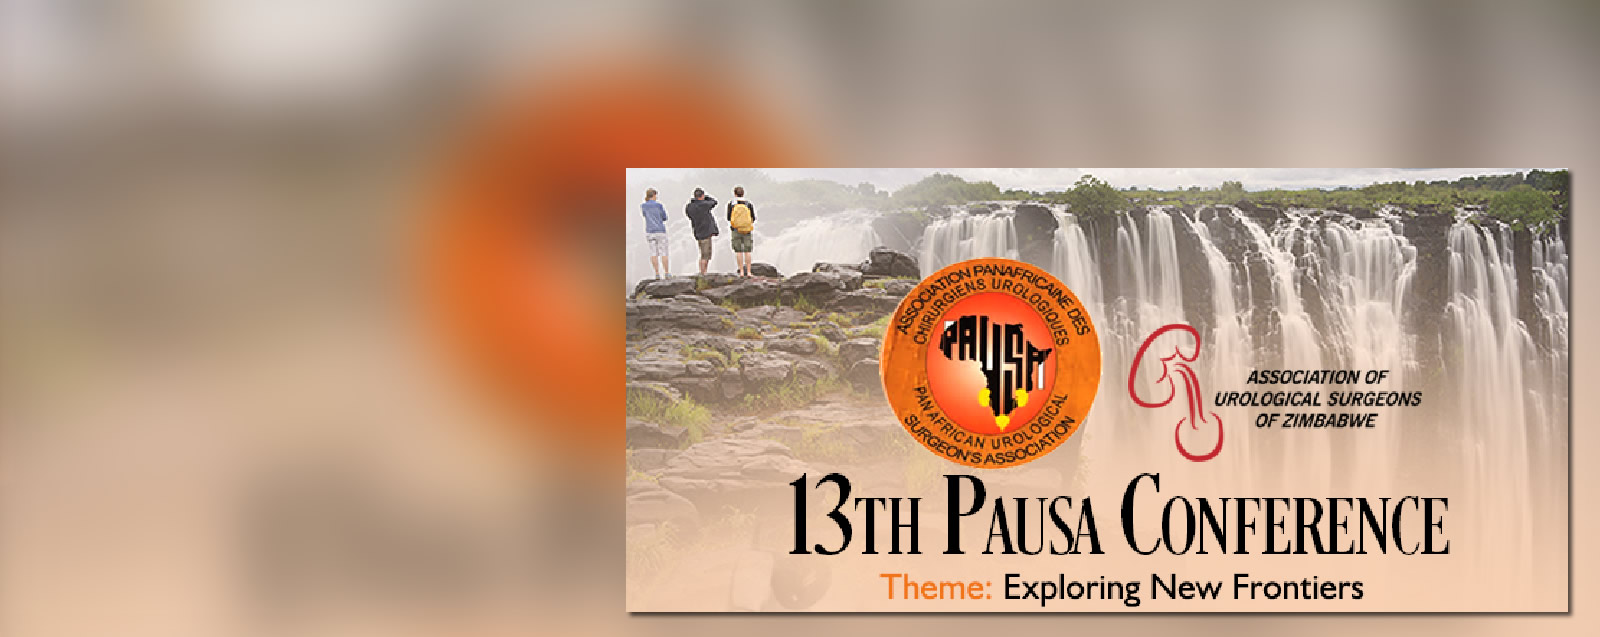 13th PAUSA Conference<BR>Victoria Falls, Zimbabwe